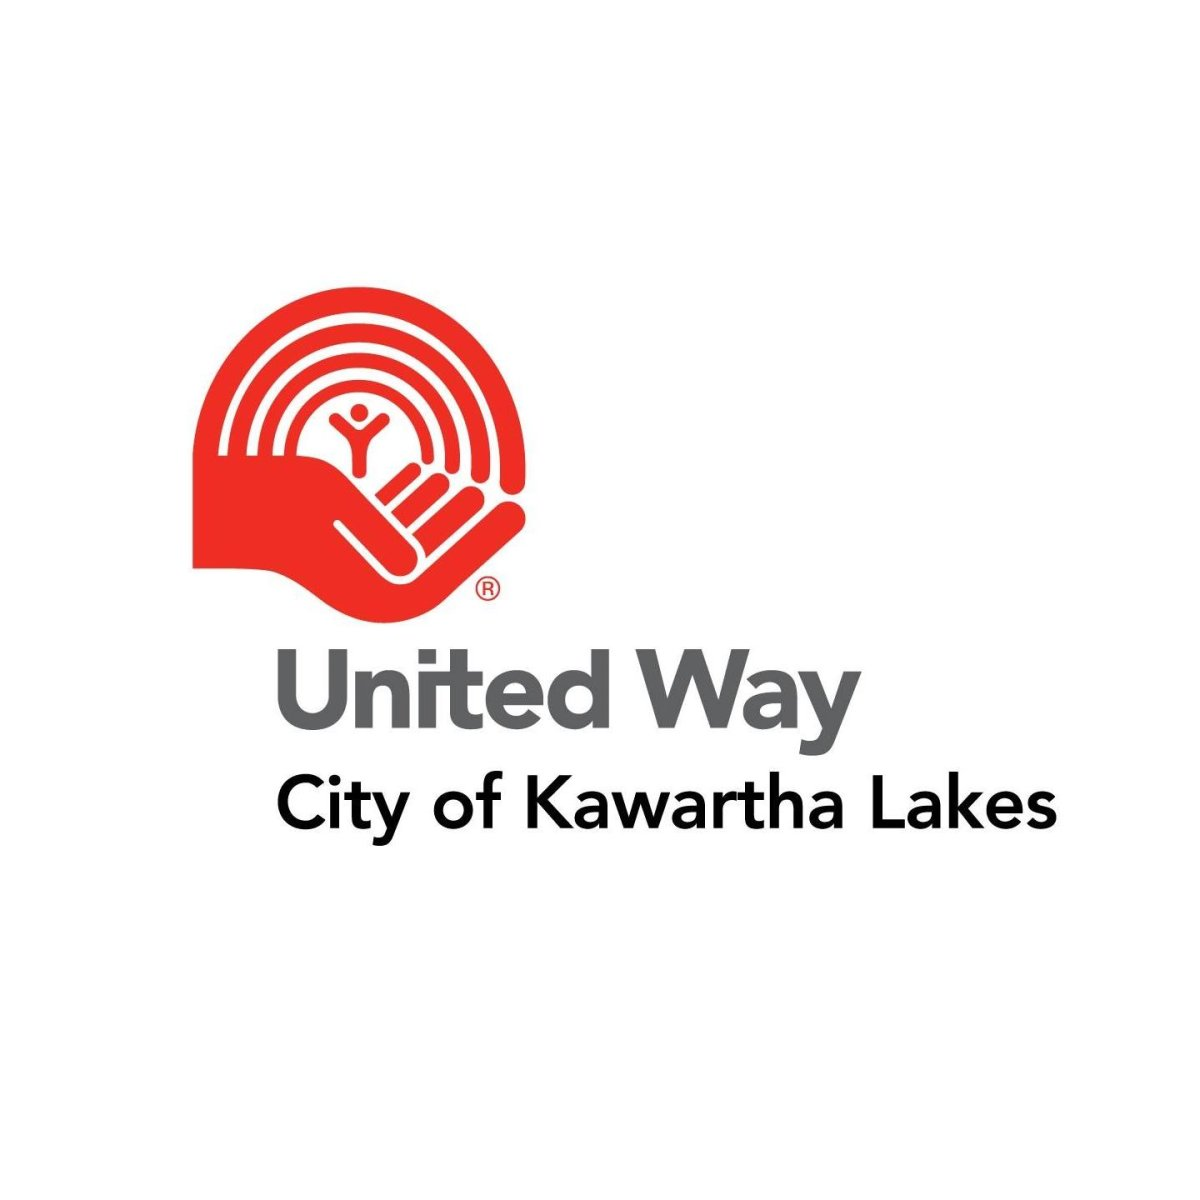 The United Way for the City of Kawartha Lakes has provided more than $217,000 to 17 organizations supporting people during the COVID-19 pandemic.